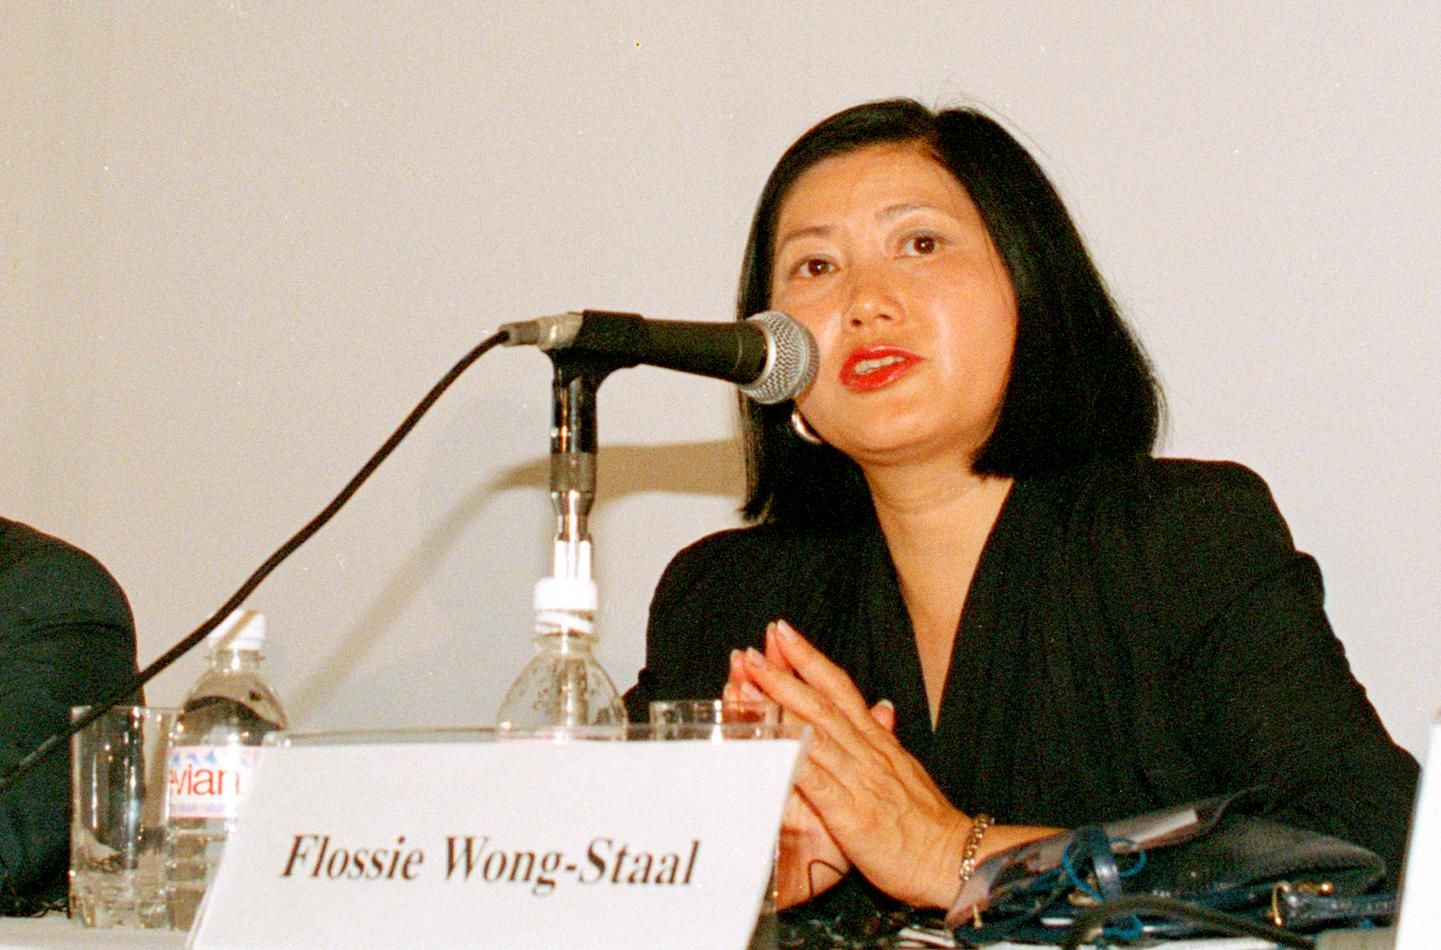 In this Aug. 10, 1994 photo, Dr. Flossie Wong-Staal of the University of California in San Diego, addresses a session of the 10th International Conference on AIDS in Yokohama, Japan. Wong-Staal is among 10 people who will be inducted into the National Women's Hall of Fame during a ceremony on Saturday, Sept. 14, 2019. (AP Photo/Koji Sasahara)